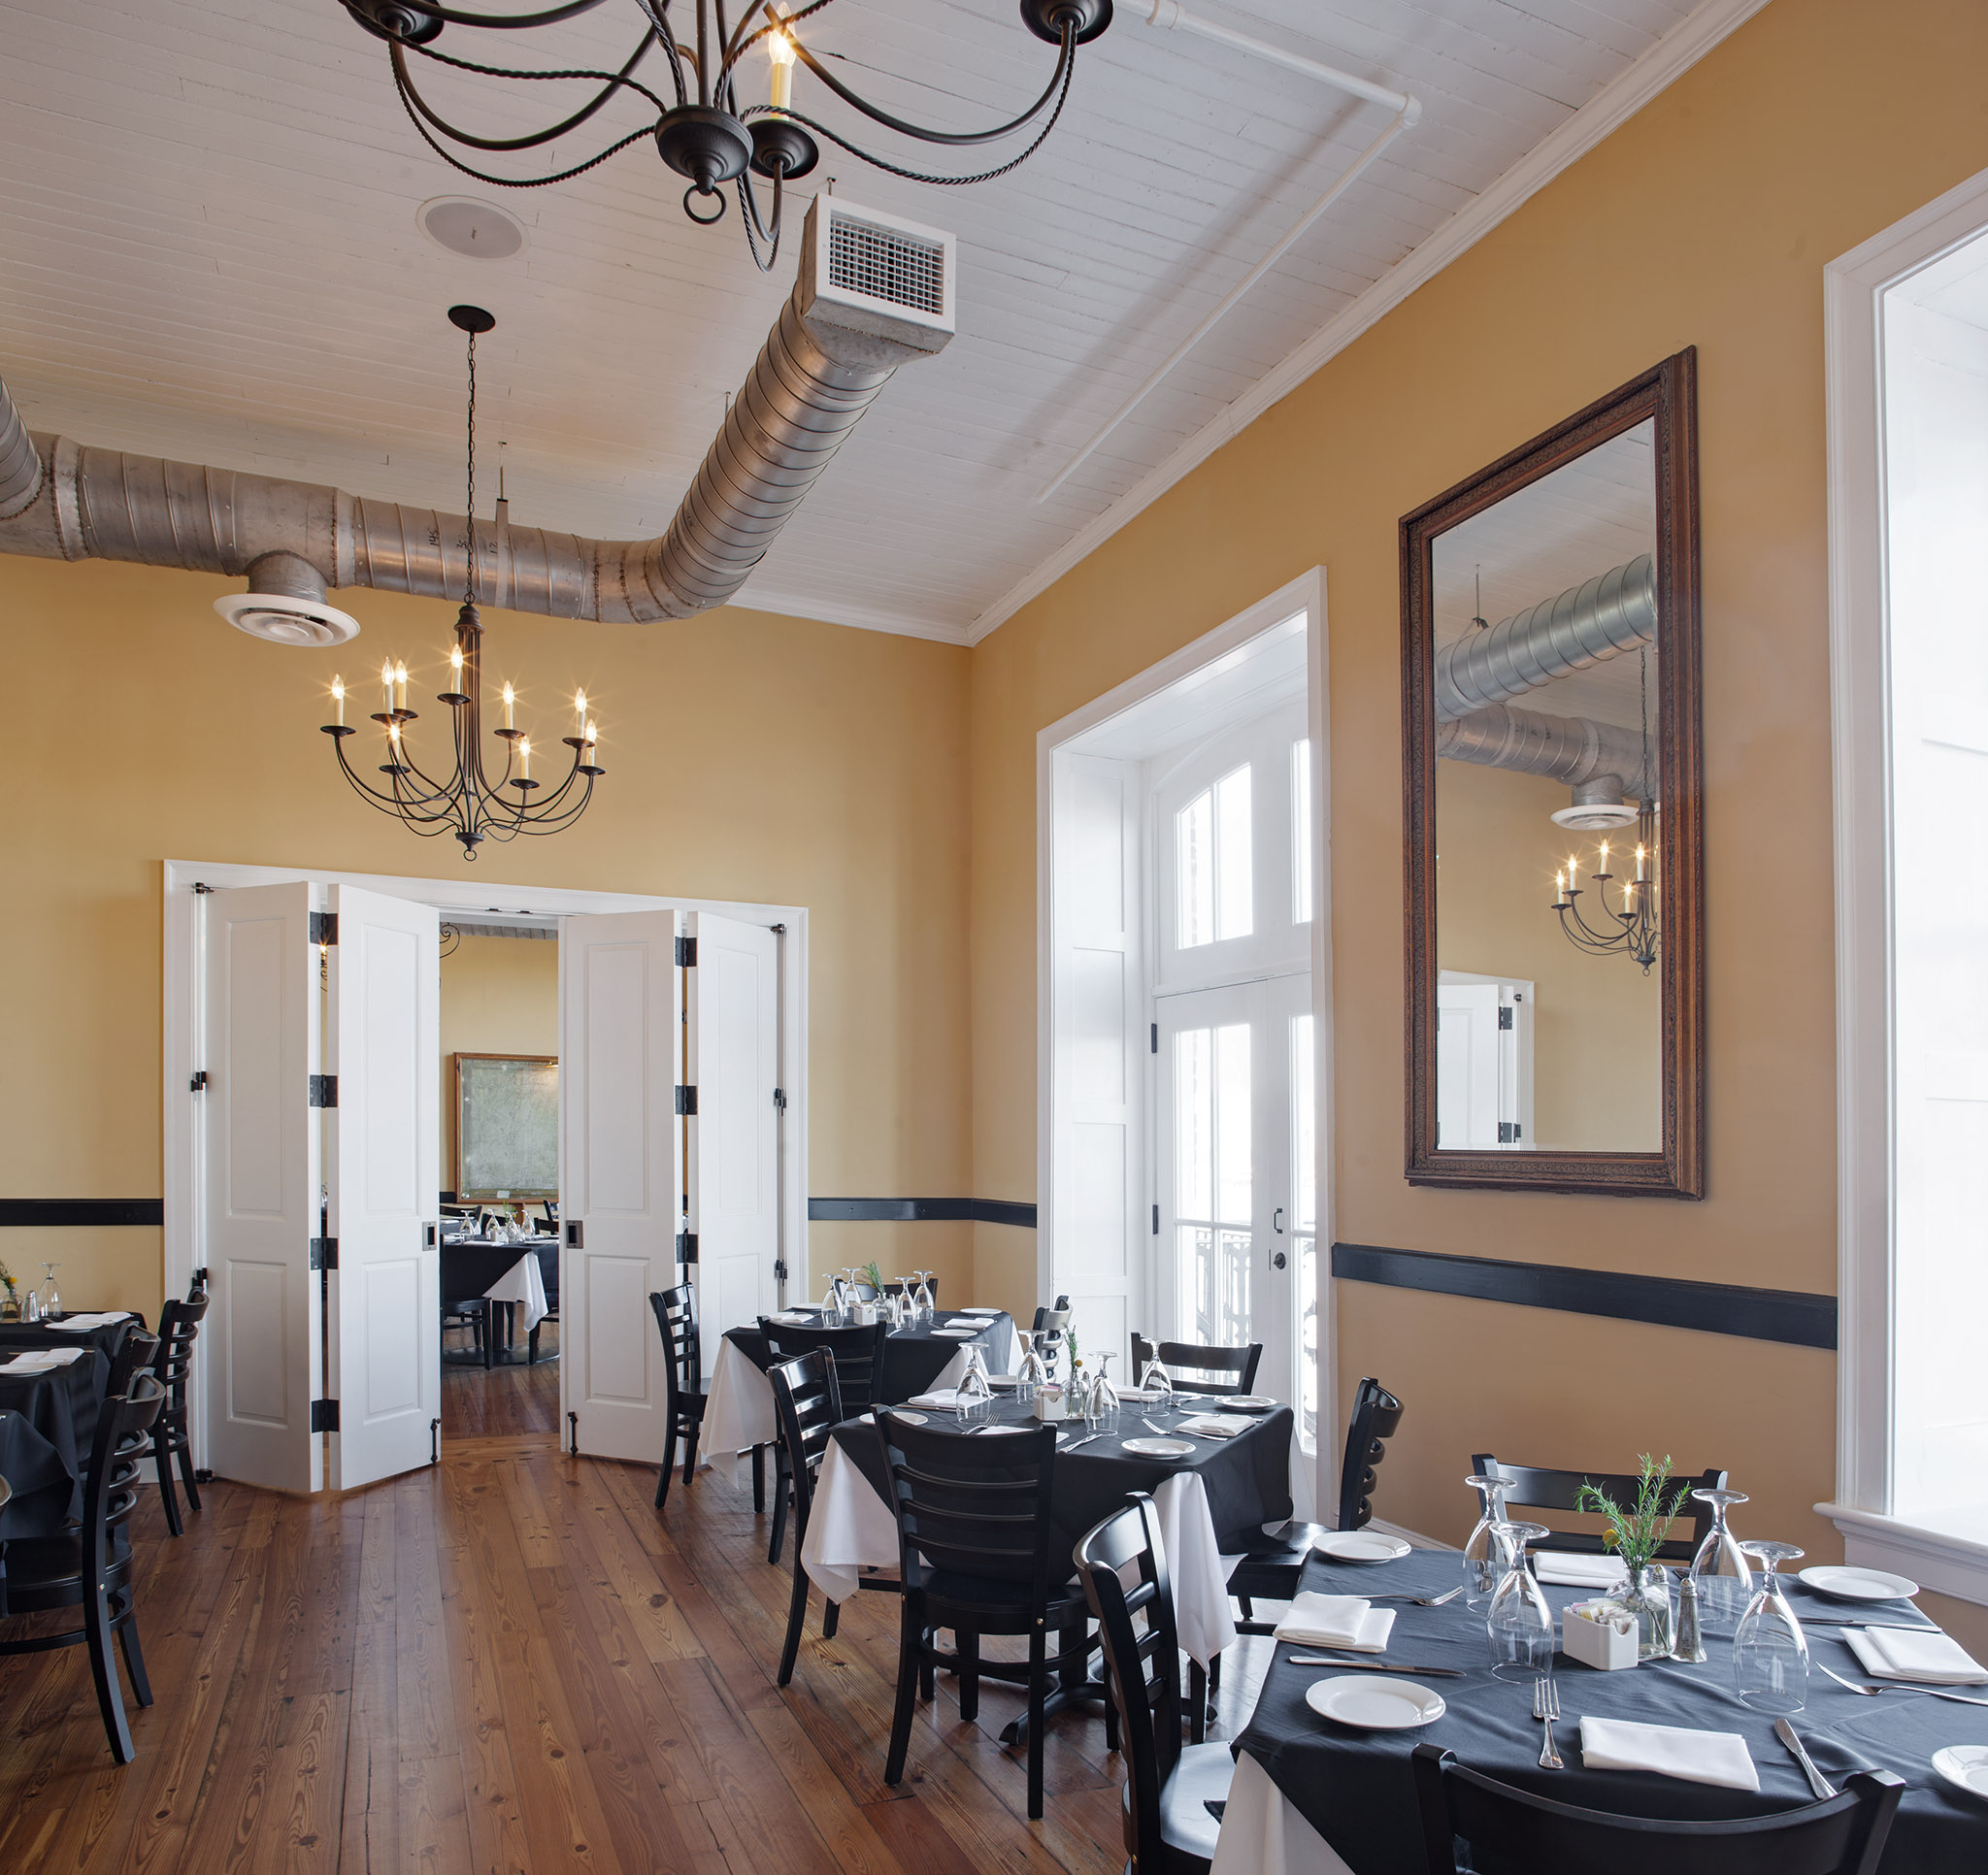 Vics remodeled dining room with Masonite Architectural stile and rail doors in the background.